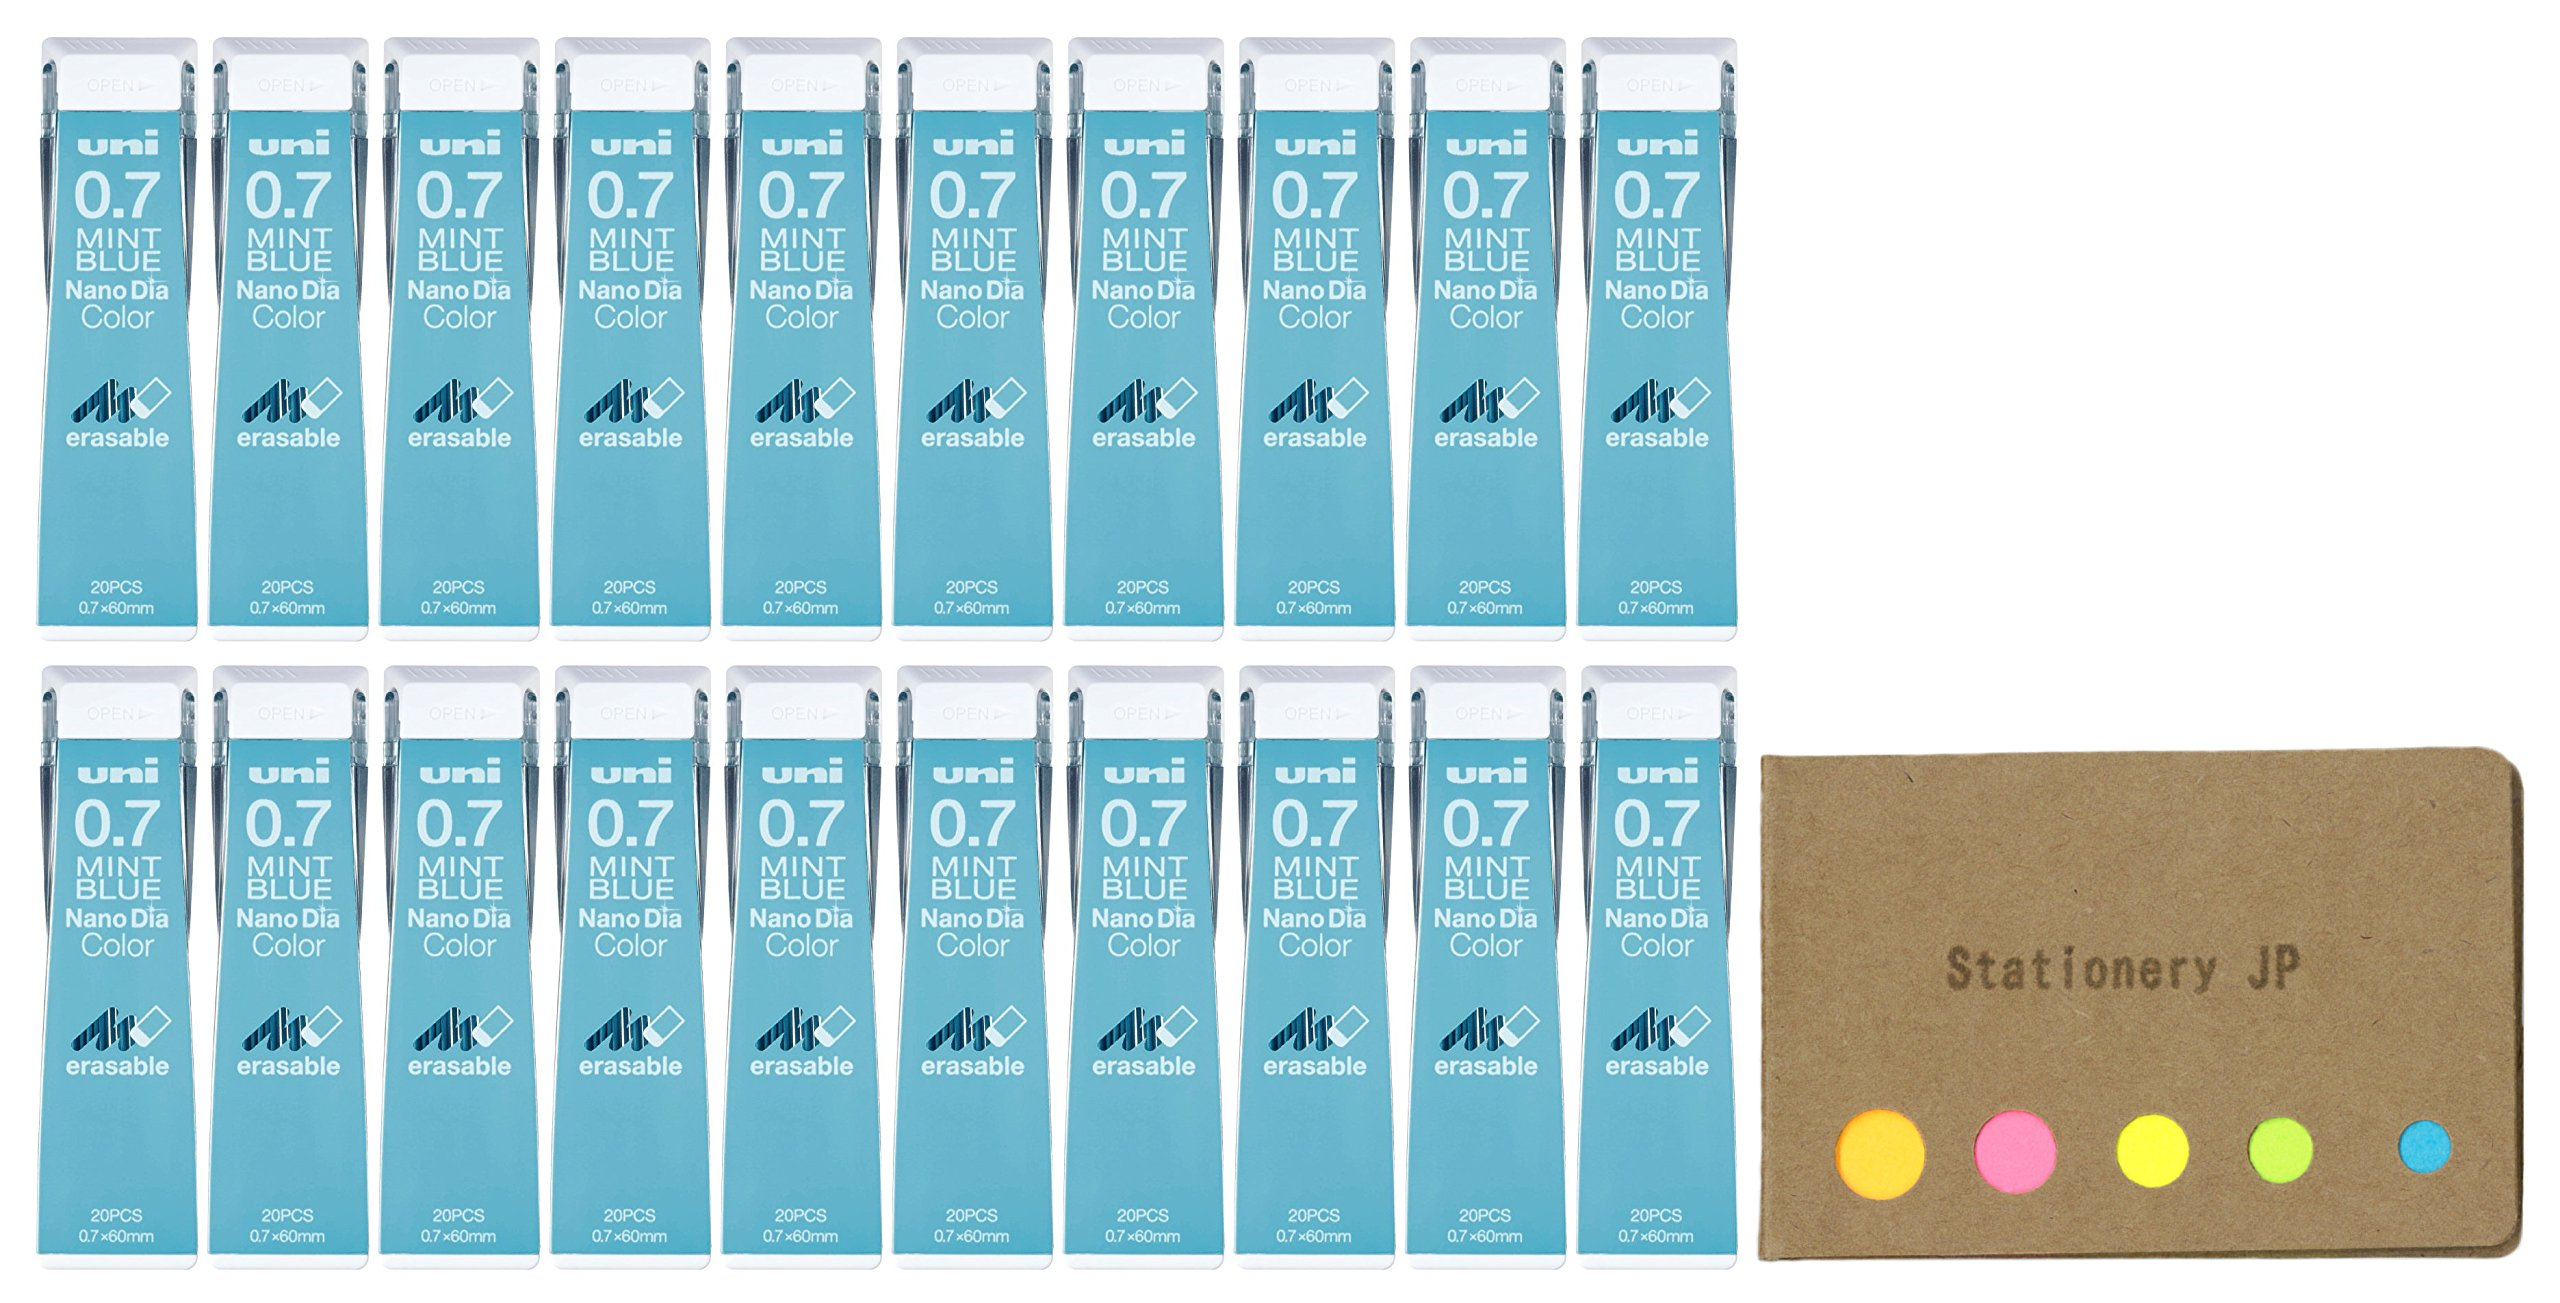 Uni NanoDia Color Mechanical Pencil Leads, 0.7mm, Mint Blue, 20-pack/total 400 Leads, Sticky Notes Value Set by Stationery JP (Image #1)